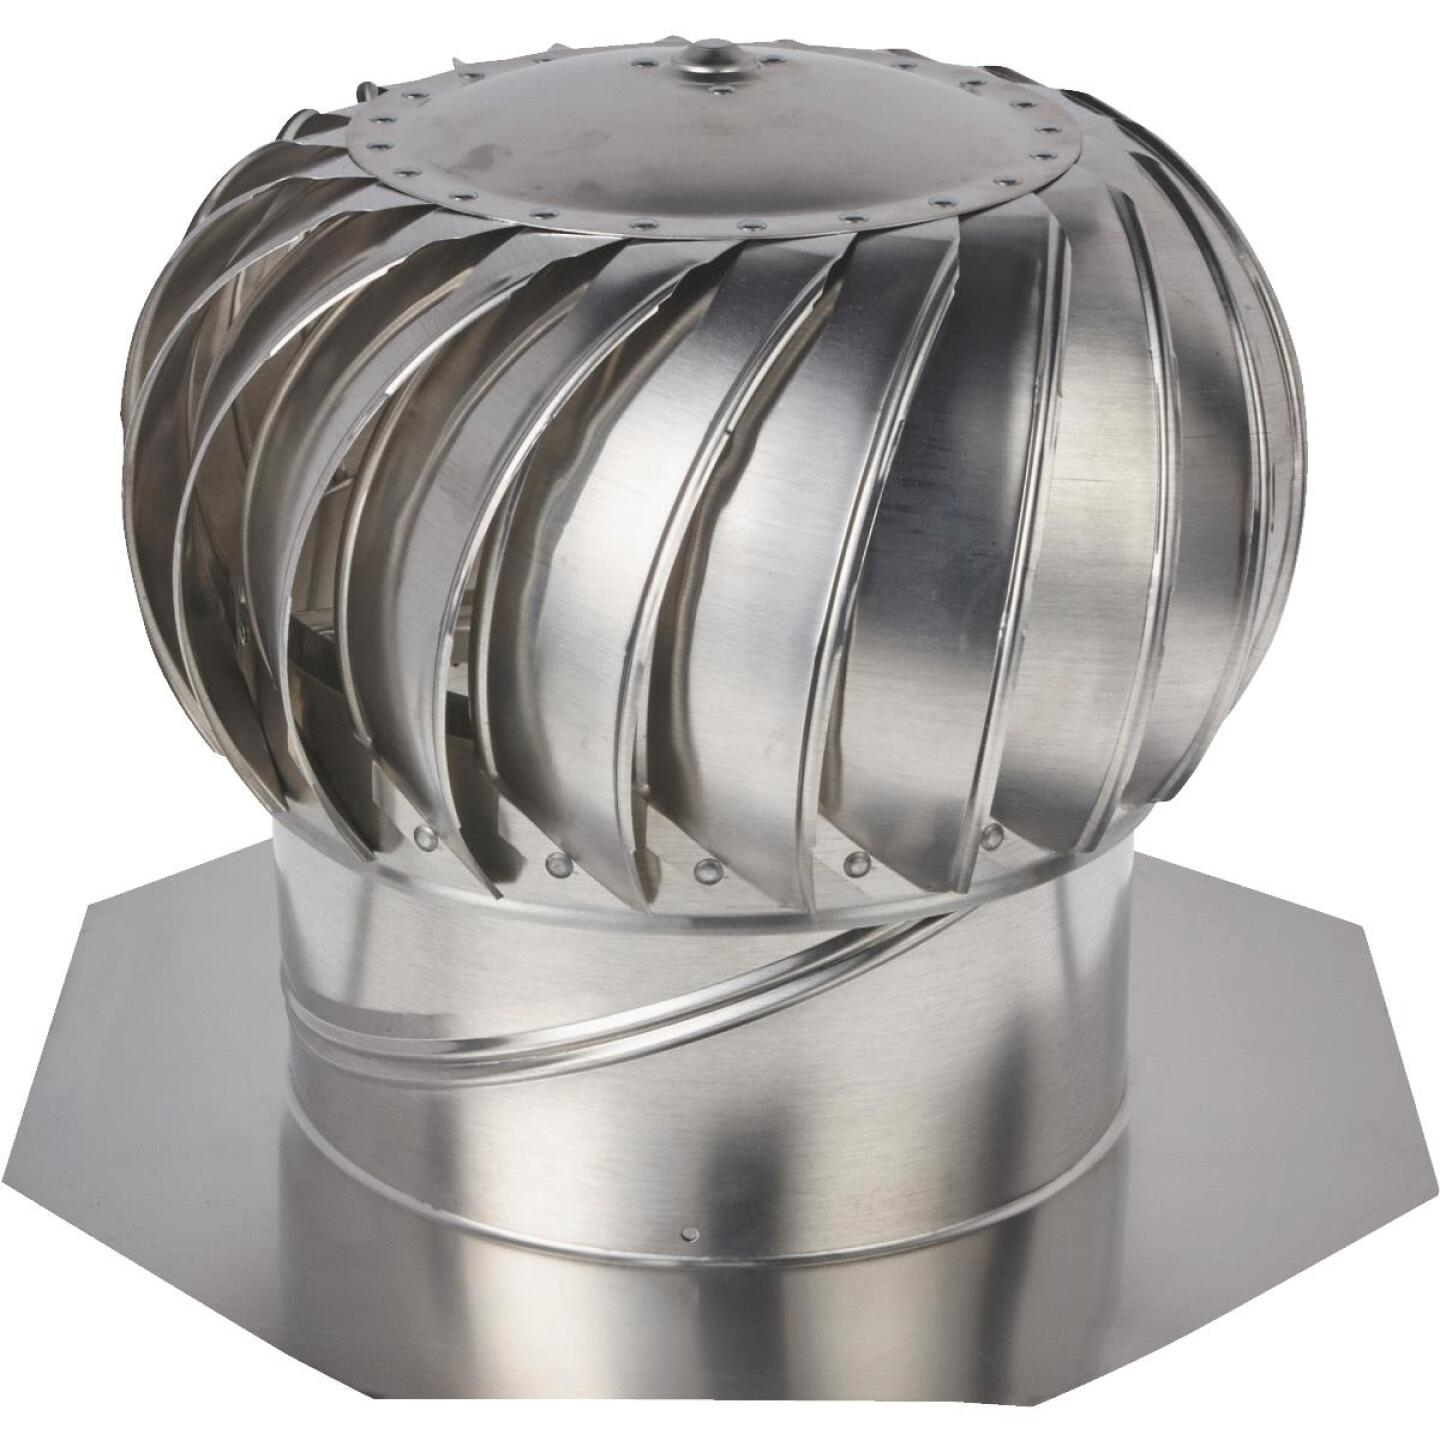 "Ventamatic Cool Attic 12"" Aluminum Mill Wind Turbine Attic Vent Image 1"